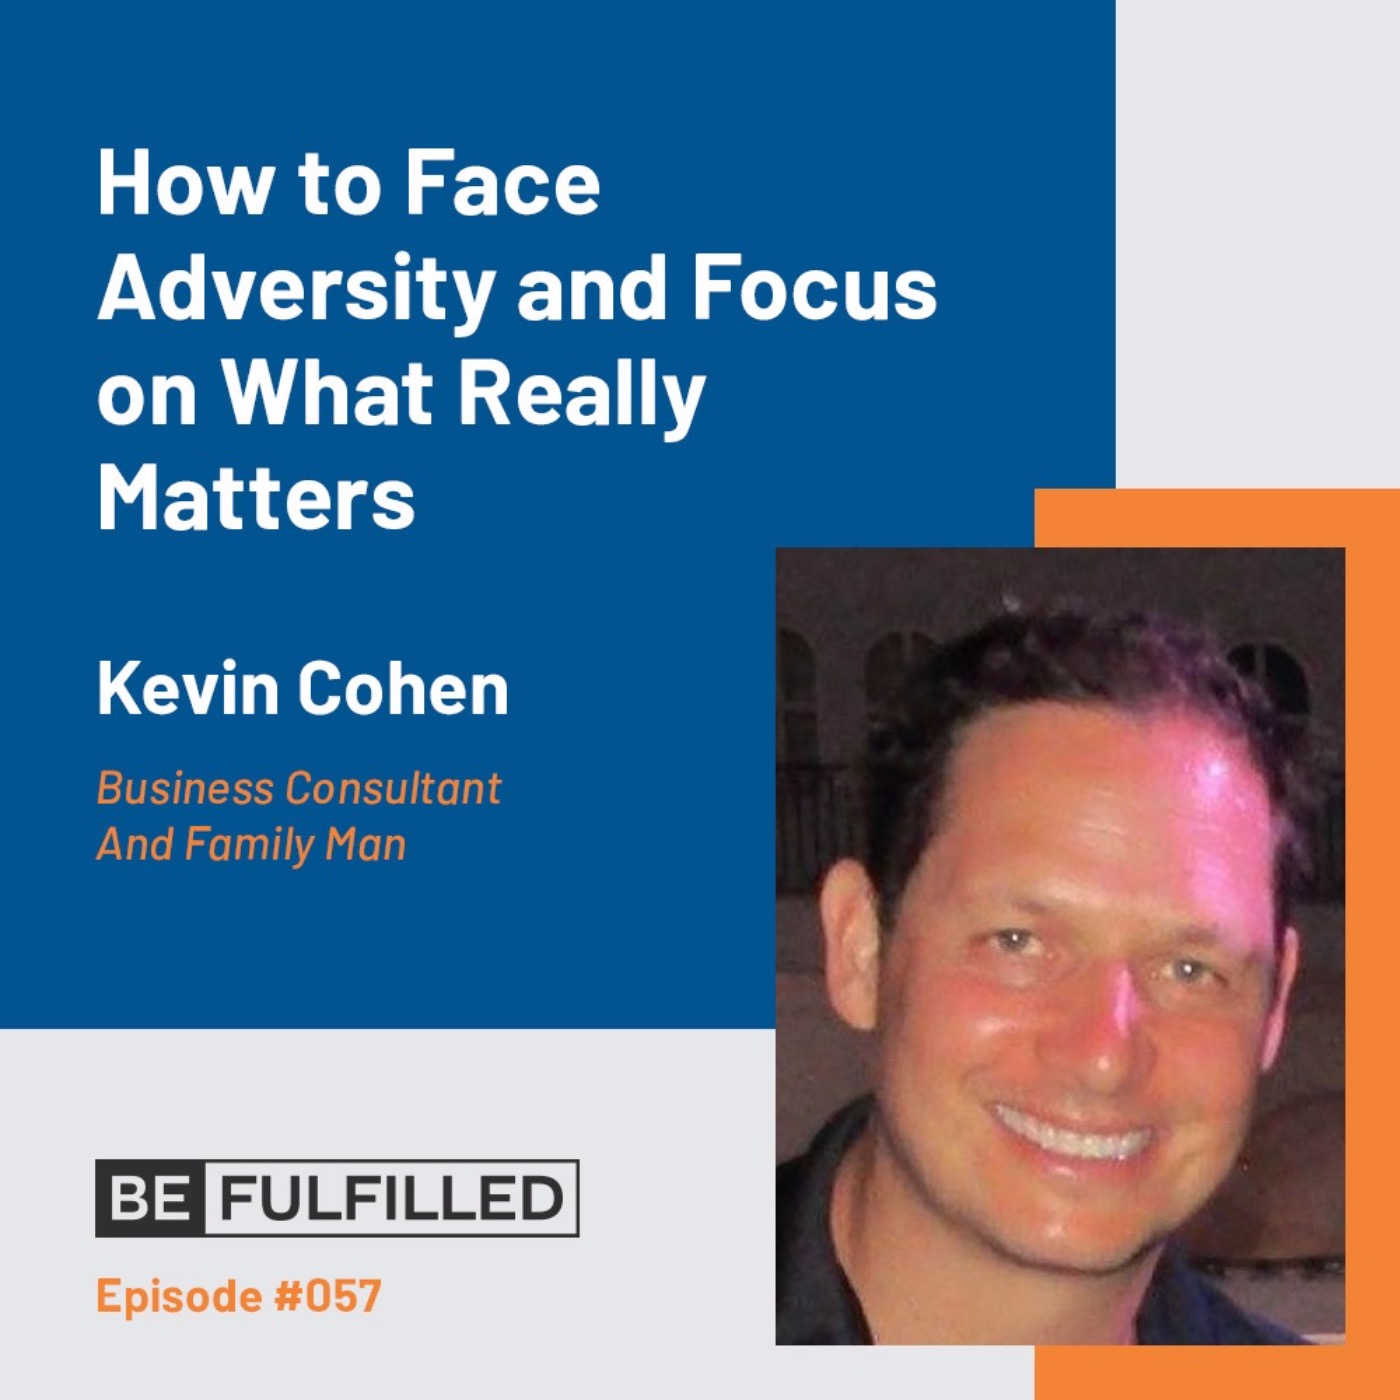 How to Face Adversity and Focus on What Really Matters - Kevin Cohen